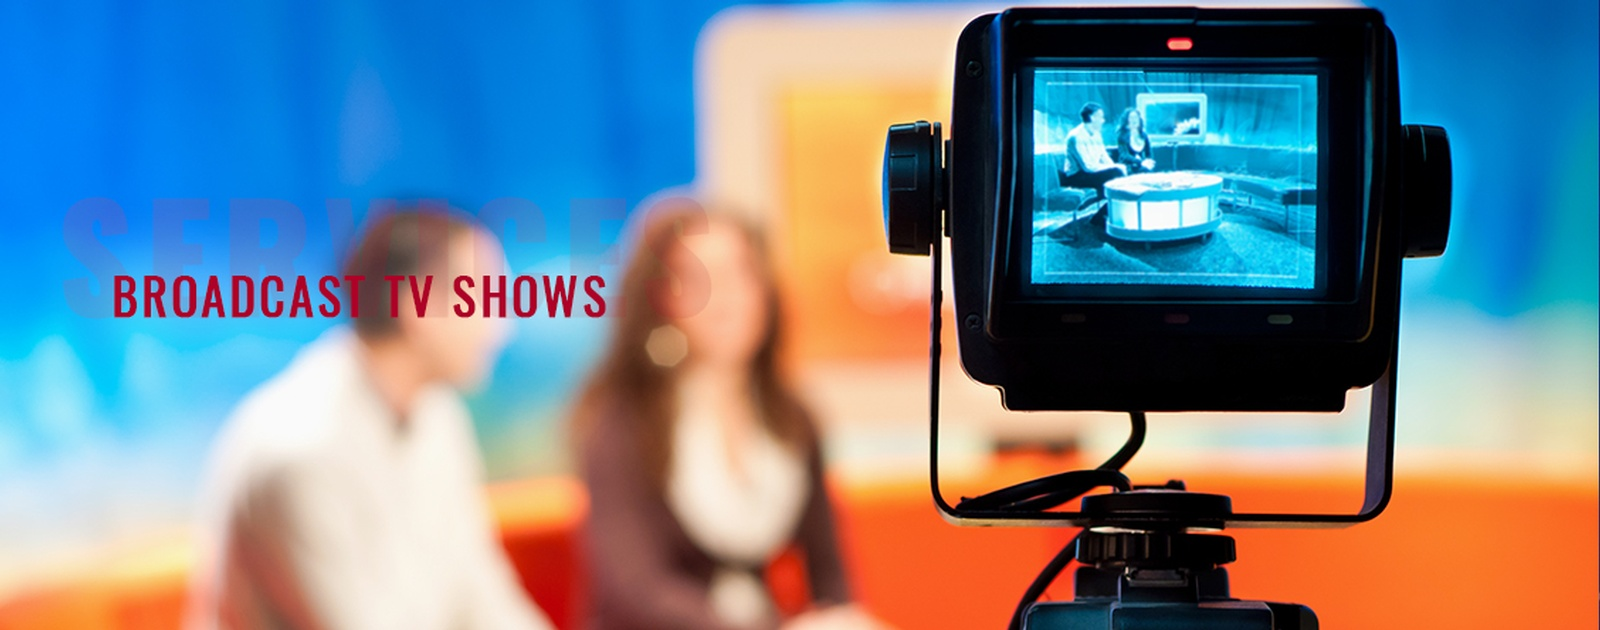 Broadcast TV Shows by Sparkle Films LLC - Video Production Company Dana Point